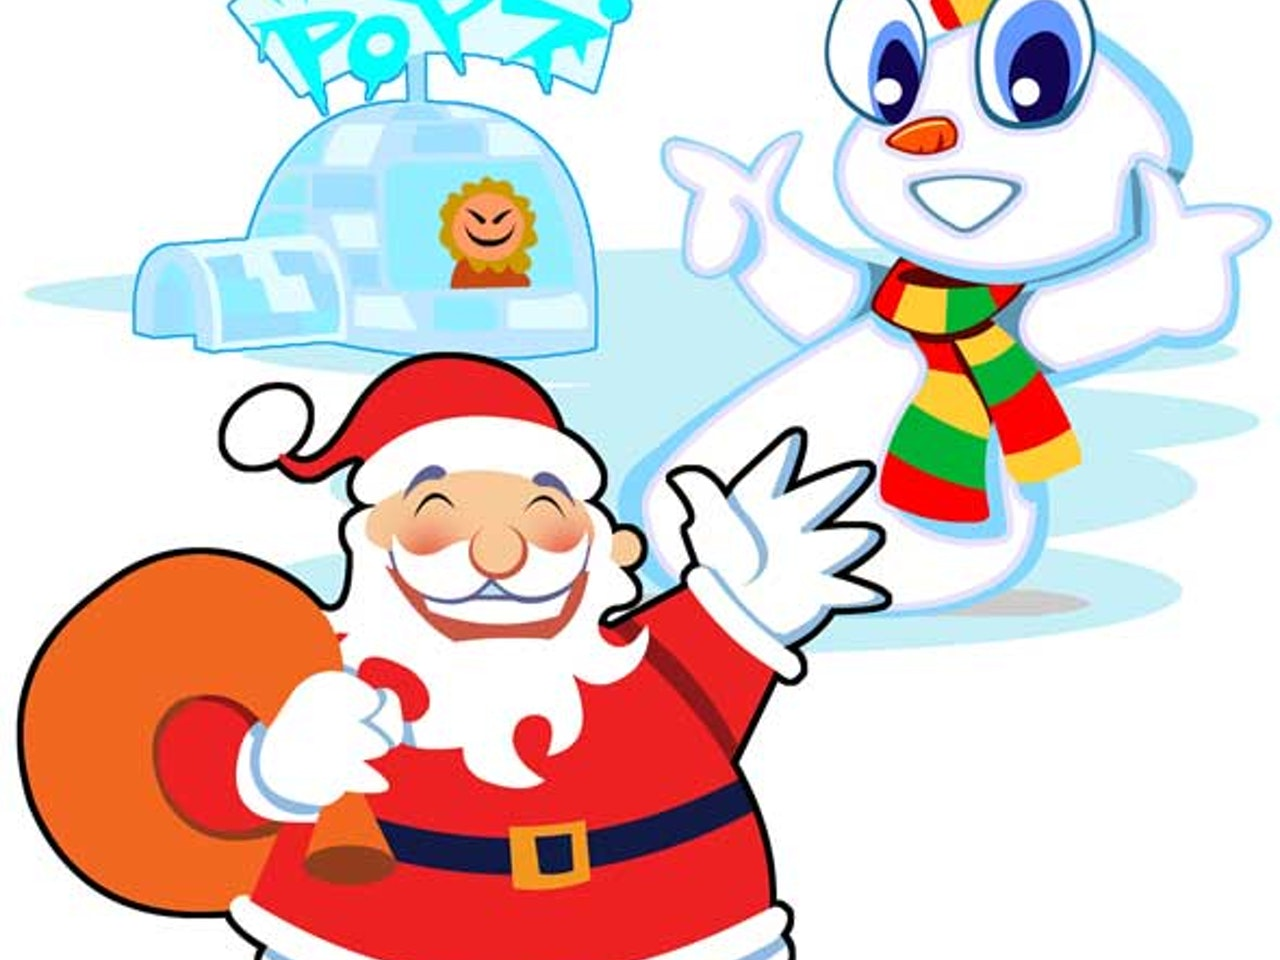 Cool funny Funky Happy manga anime childrens cartoon snowman-father-christmas xmas